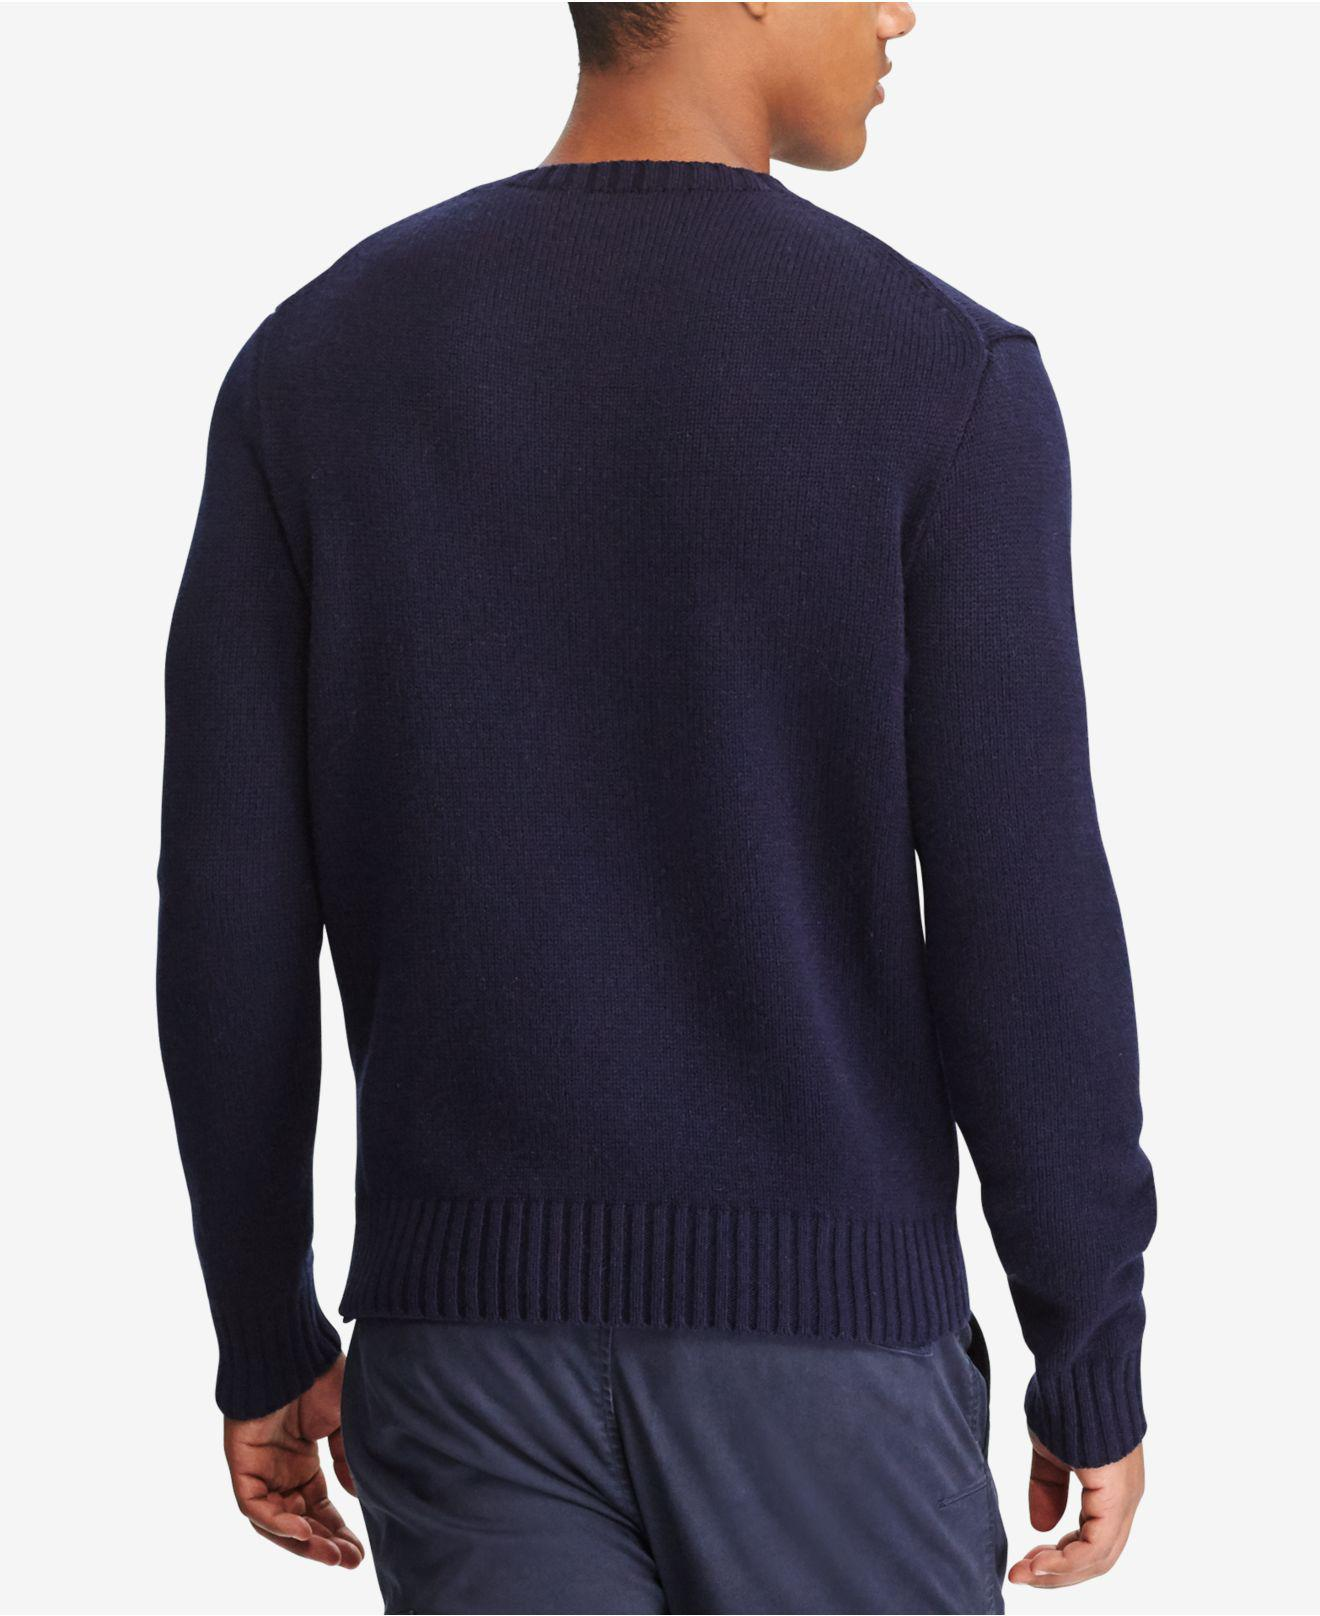 f969743bcc0 Lyst - Polo Ralph Lauren Men s Iconic Polo Bear Sweater in Blue for Men -  Save 40%